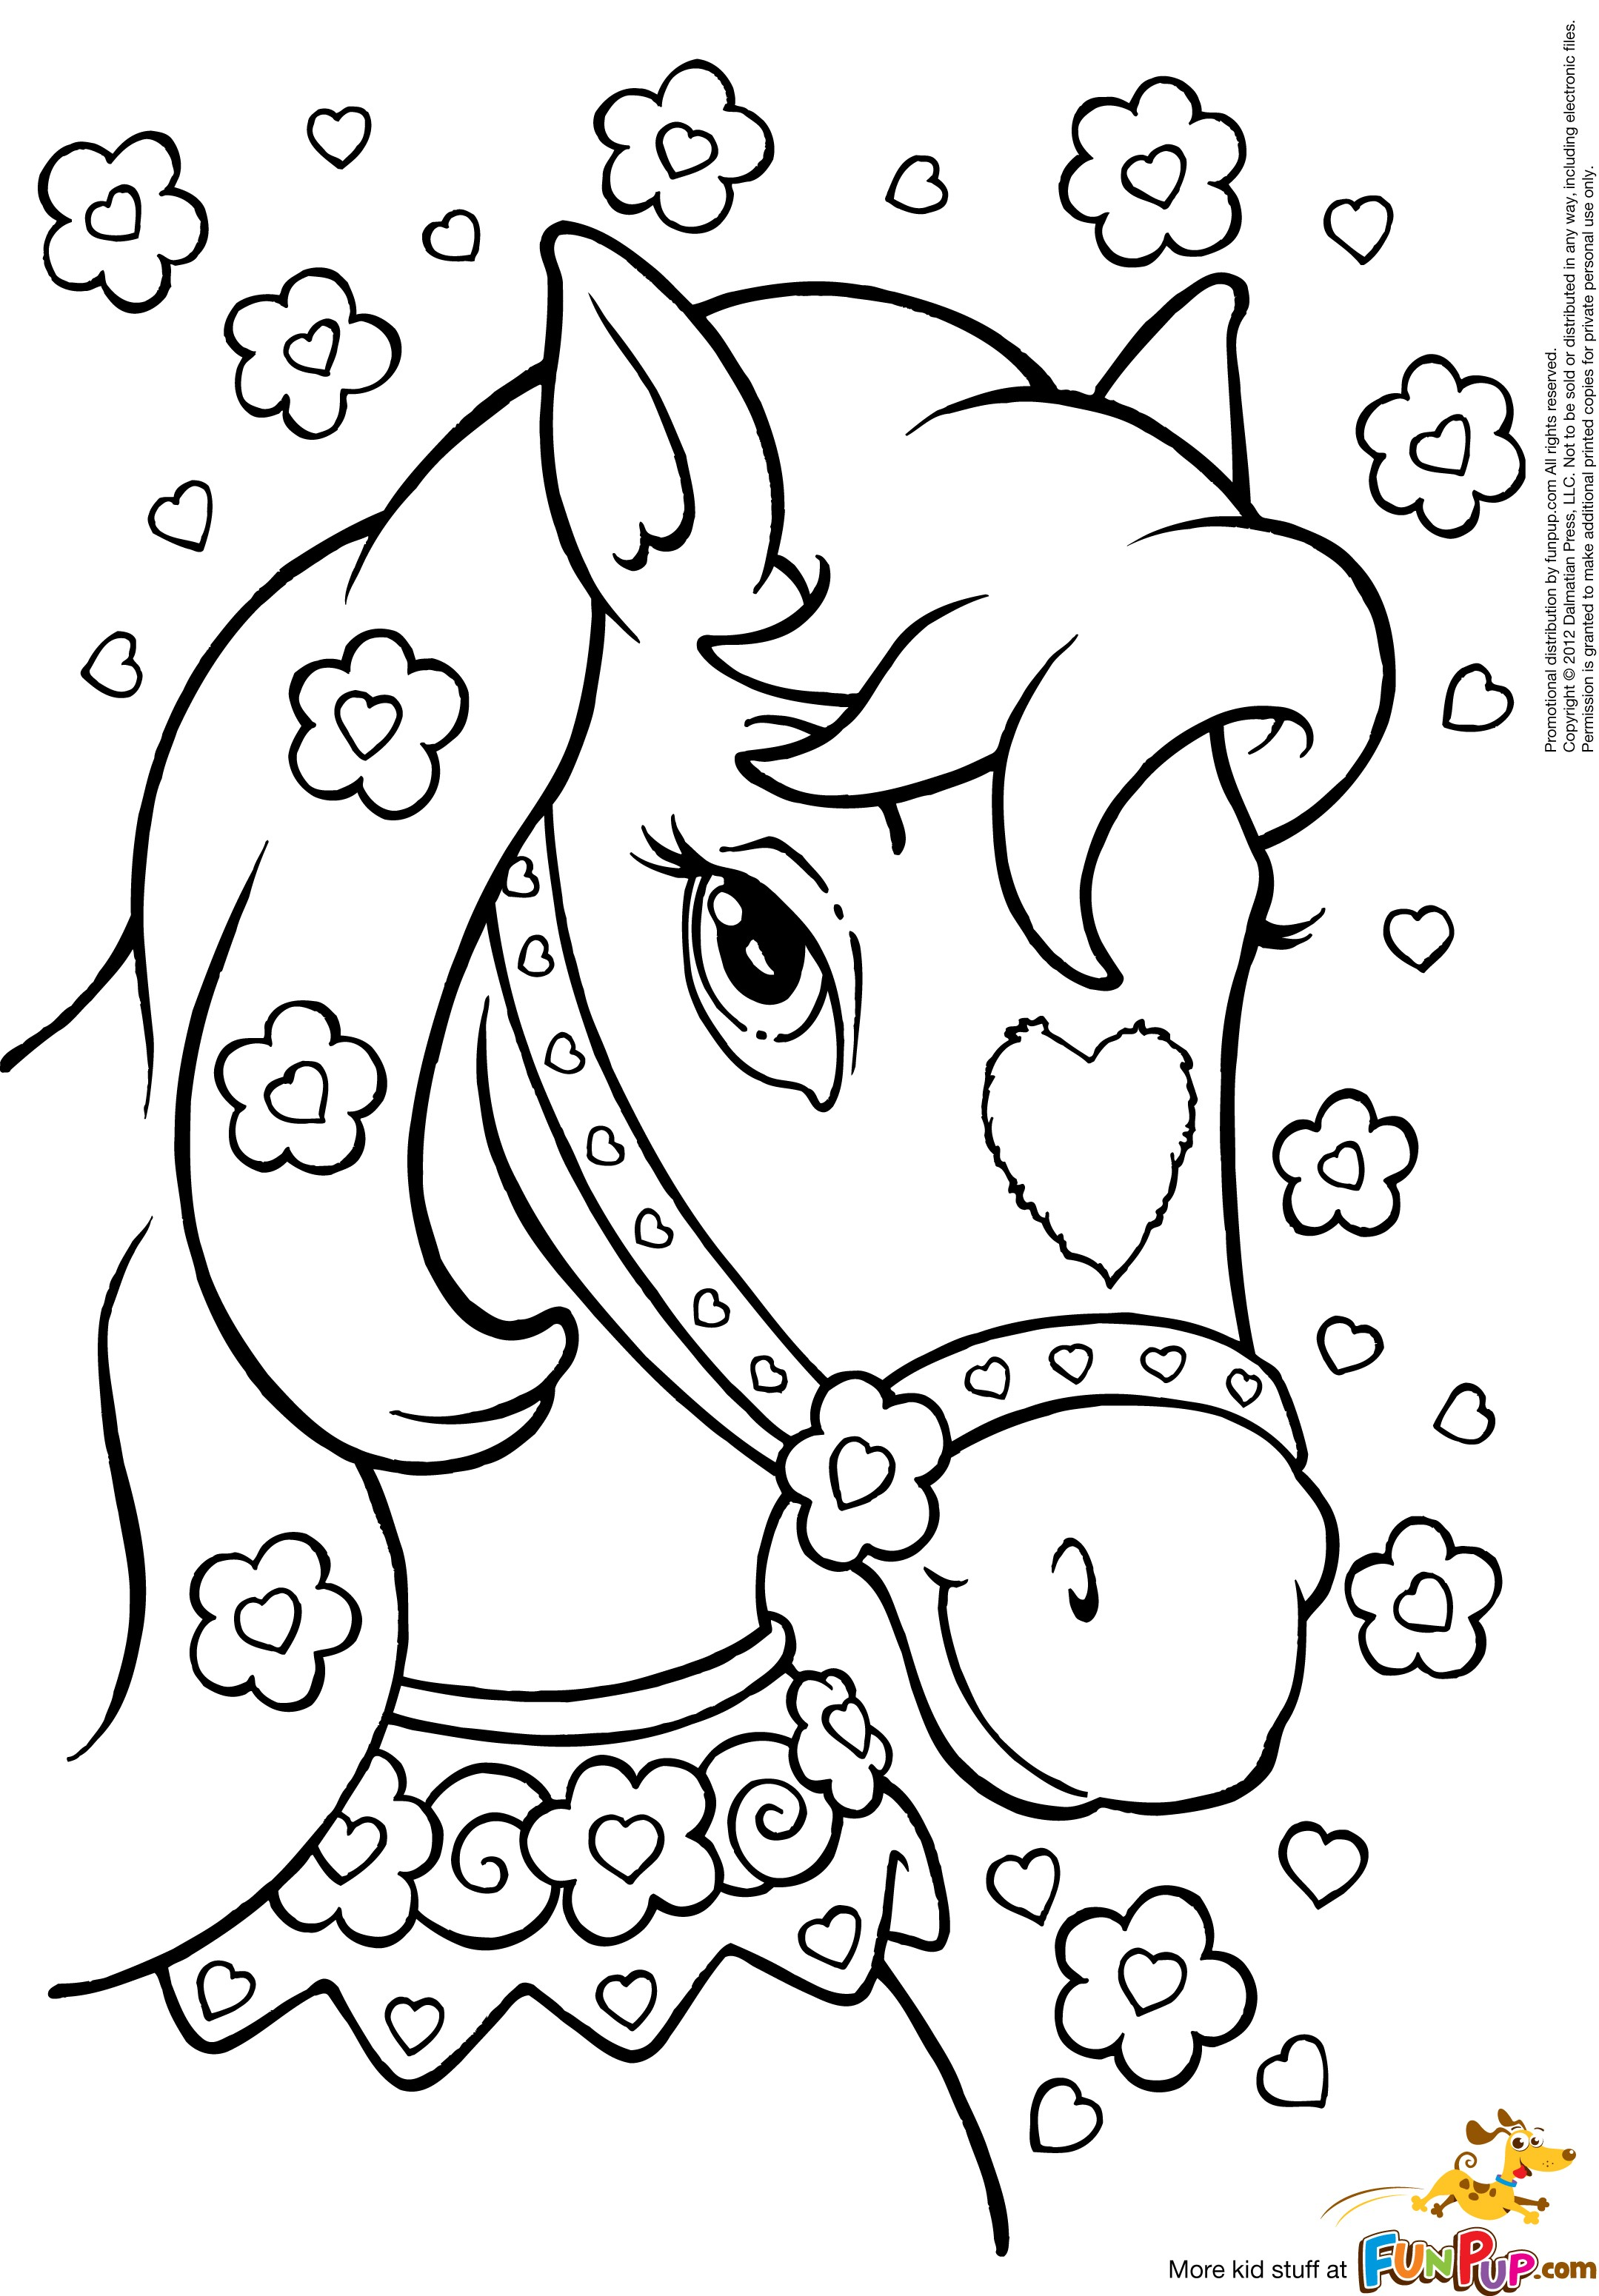 Princess coloring pages to download and print for free